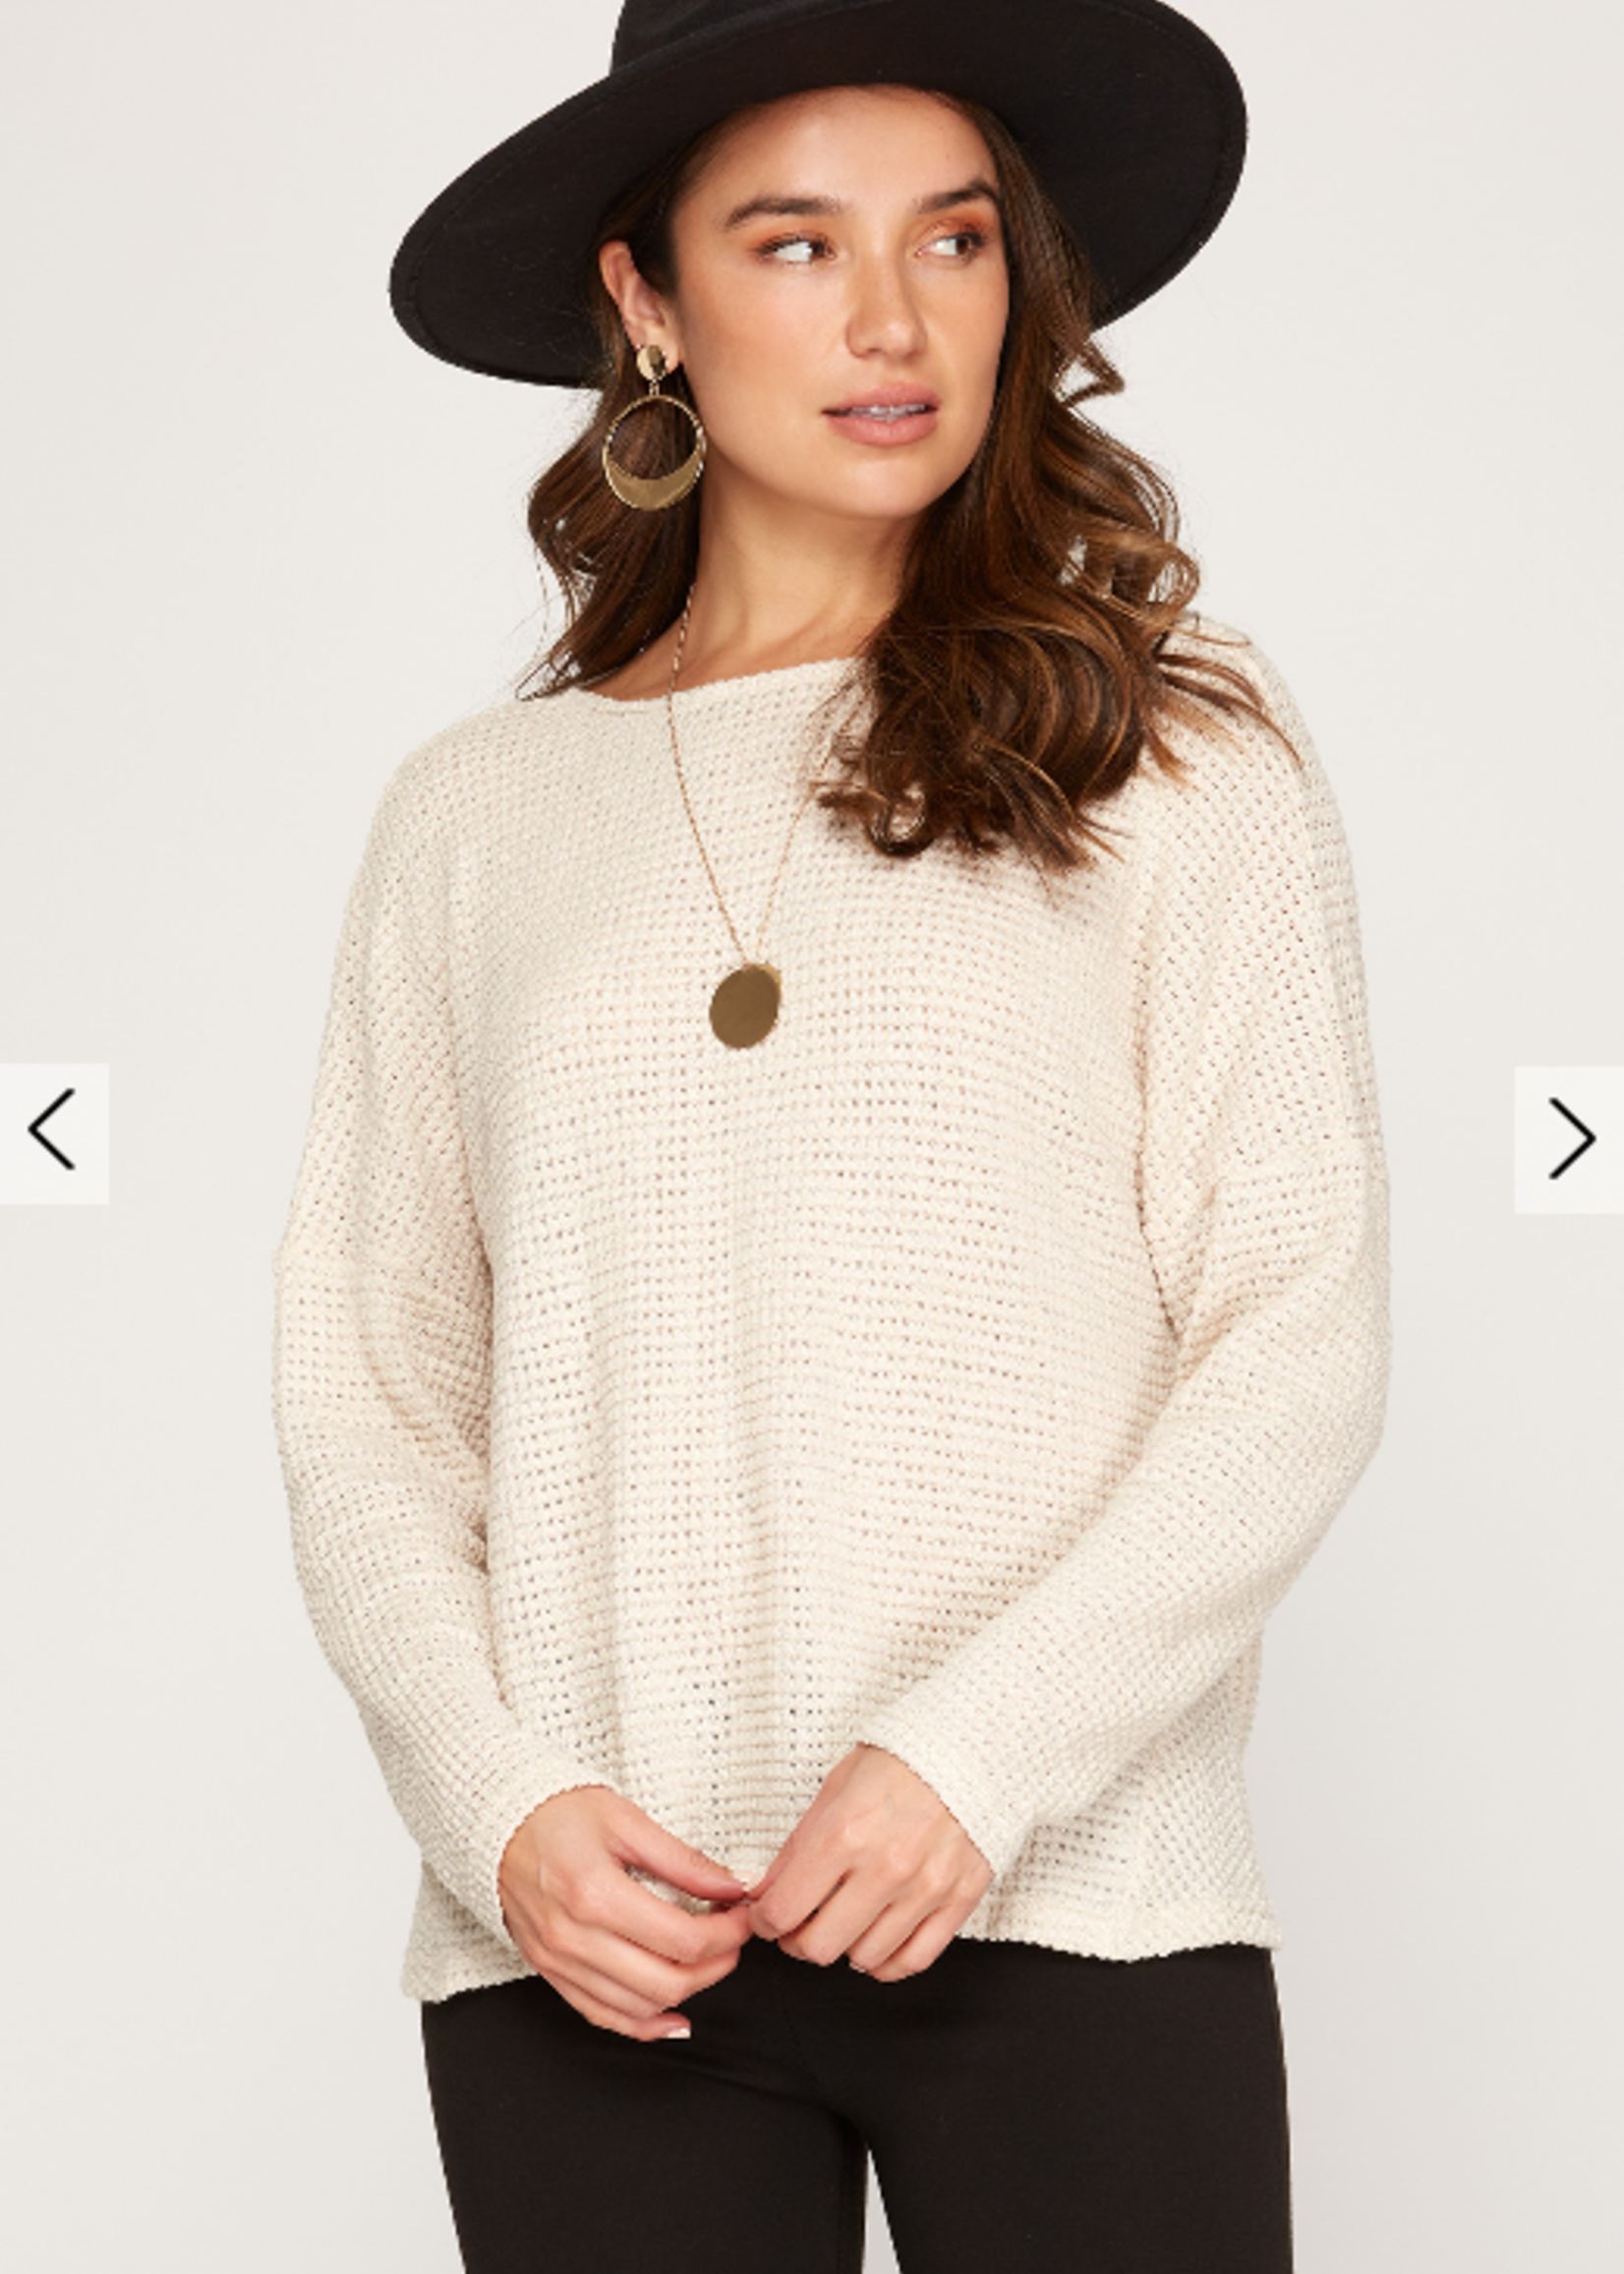 Long Sleeve Open Back Top - Light Taupe